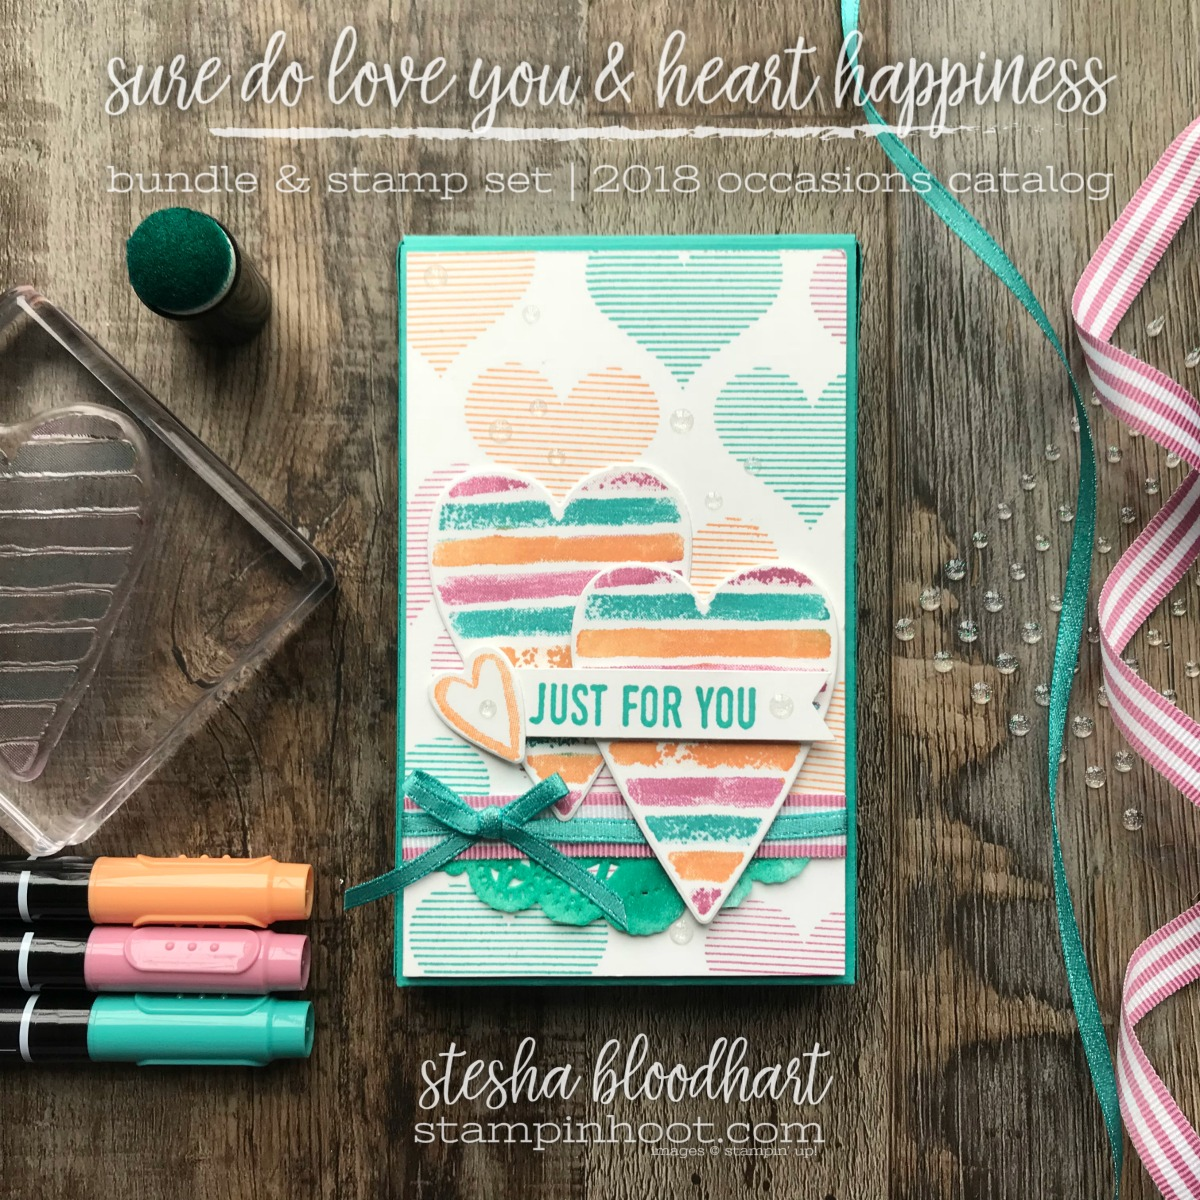 Sure Do Love You Bundle and Heart Happiness Stamp Set by Stampin' Up! for GDP121 Global Design Project 121 Color Challenge #steshabloodhart #stampinhoot #gdp121